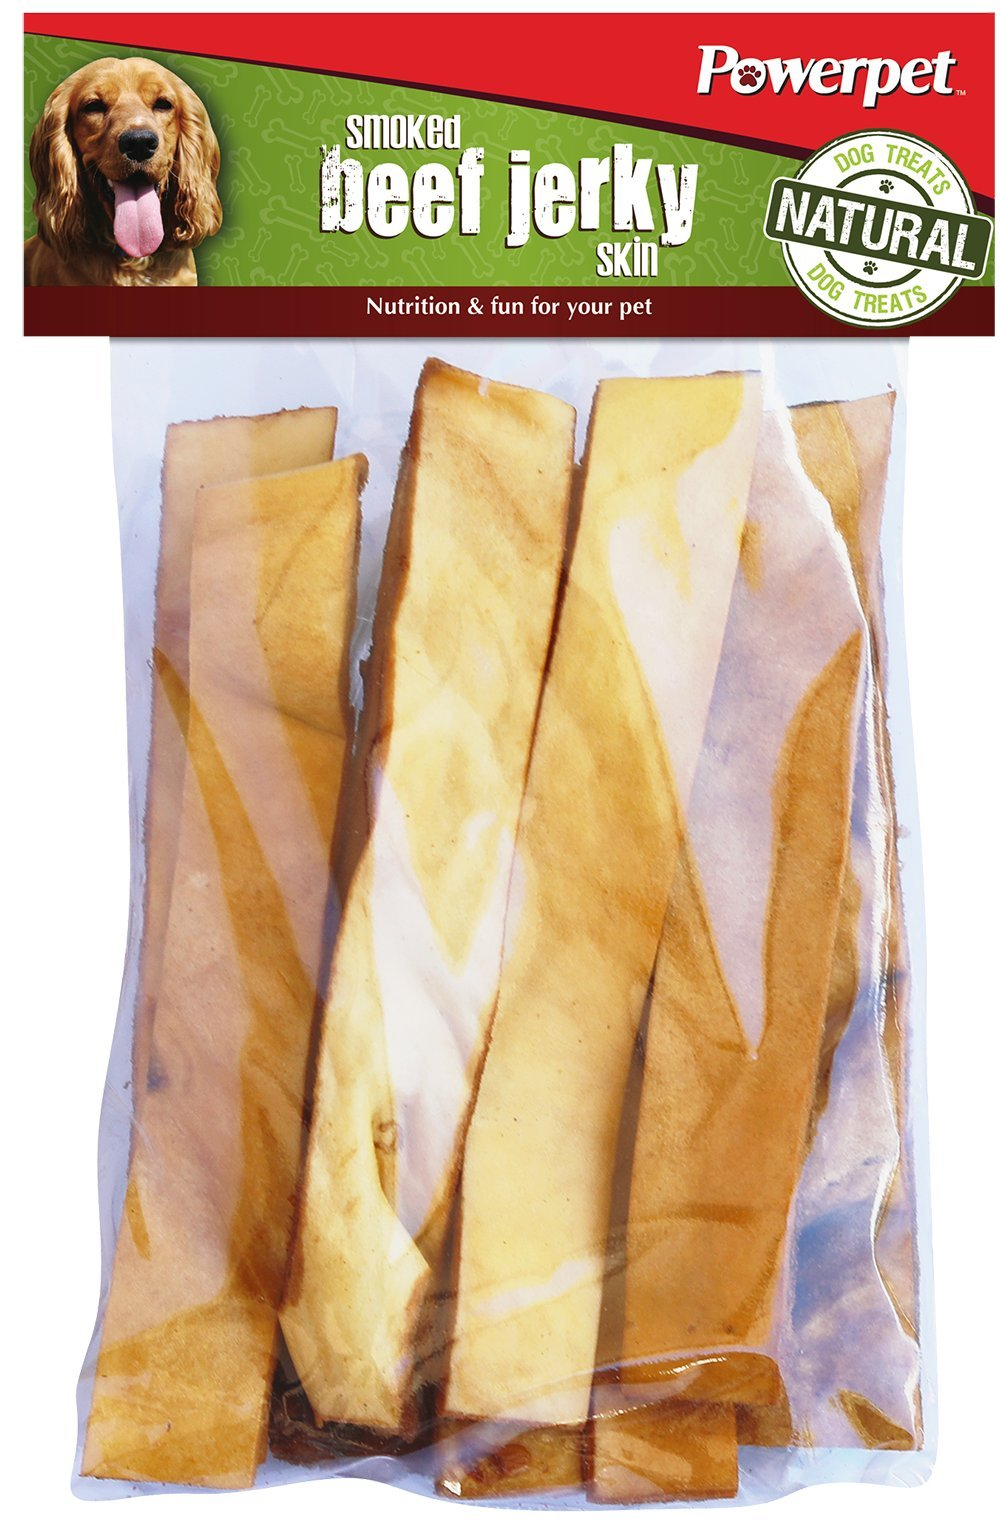 Powerpet: Smoked Beef Jerky Skins - Natural Dog Chew - 8 OZ Pack - Helps Improve Dental Hygiene - 100% Natural & Highly Digestible - Protein with Low Fat - Beef Jerky Dog Treat - Beef Skin and Meat